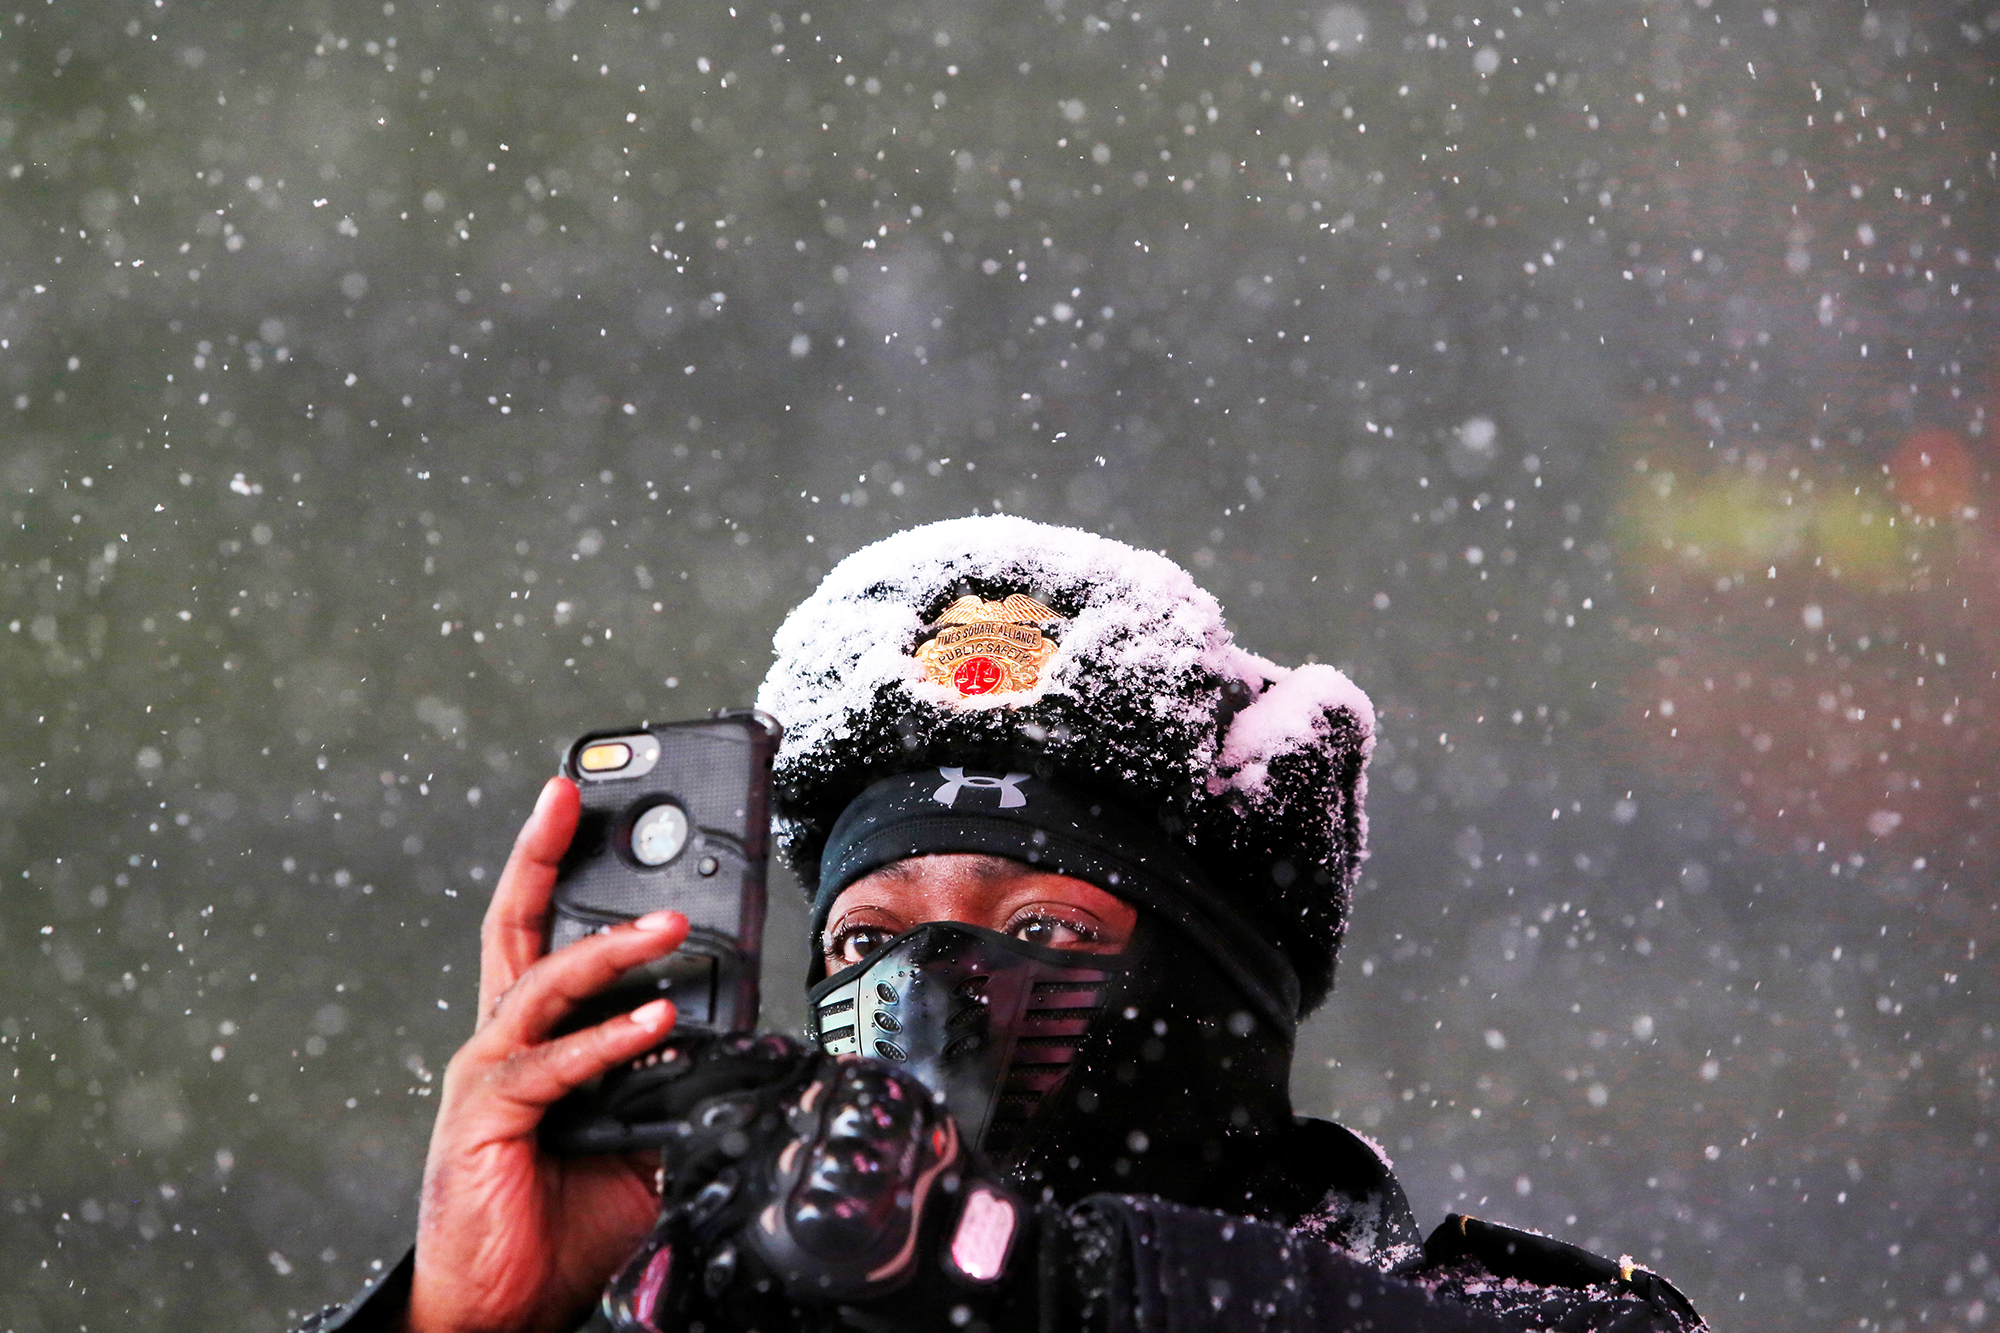 Times Square Public Safety Sergeant Baldwin Davis captures falling snow with his phone in Times Square in New York City, on March 14, 2017.